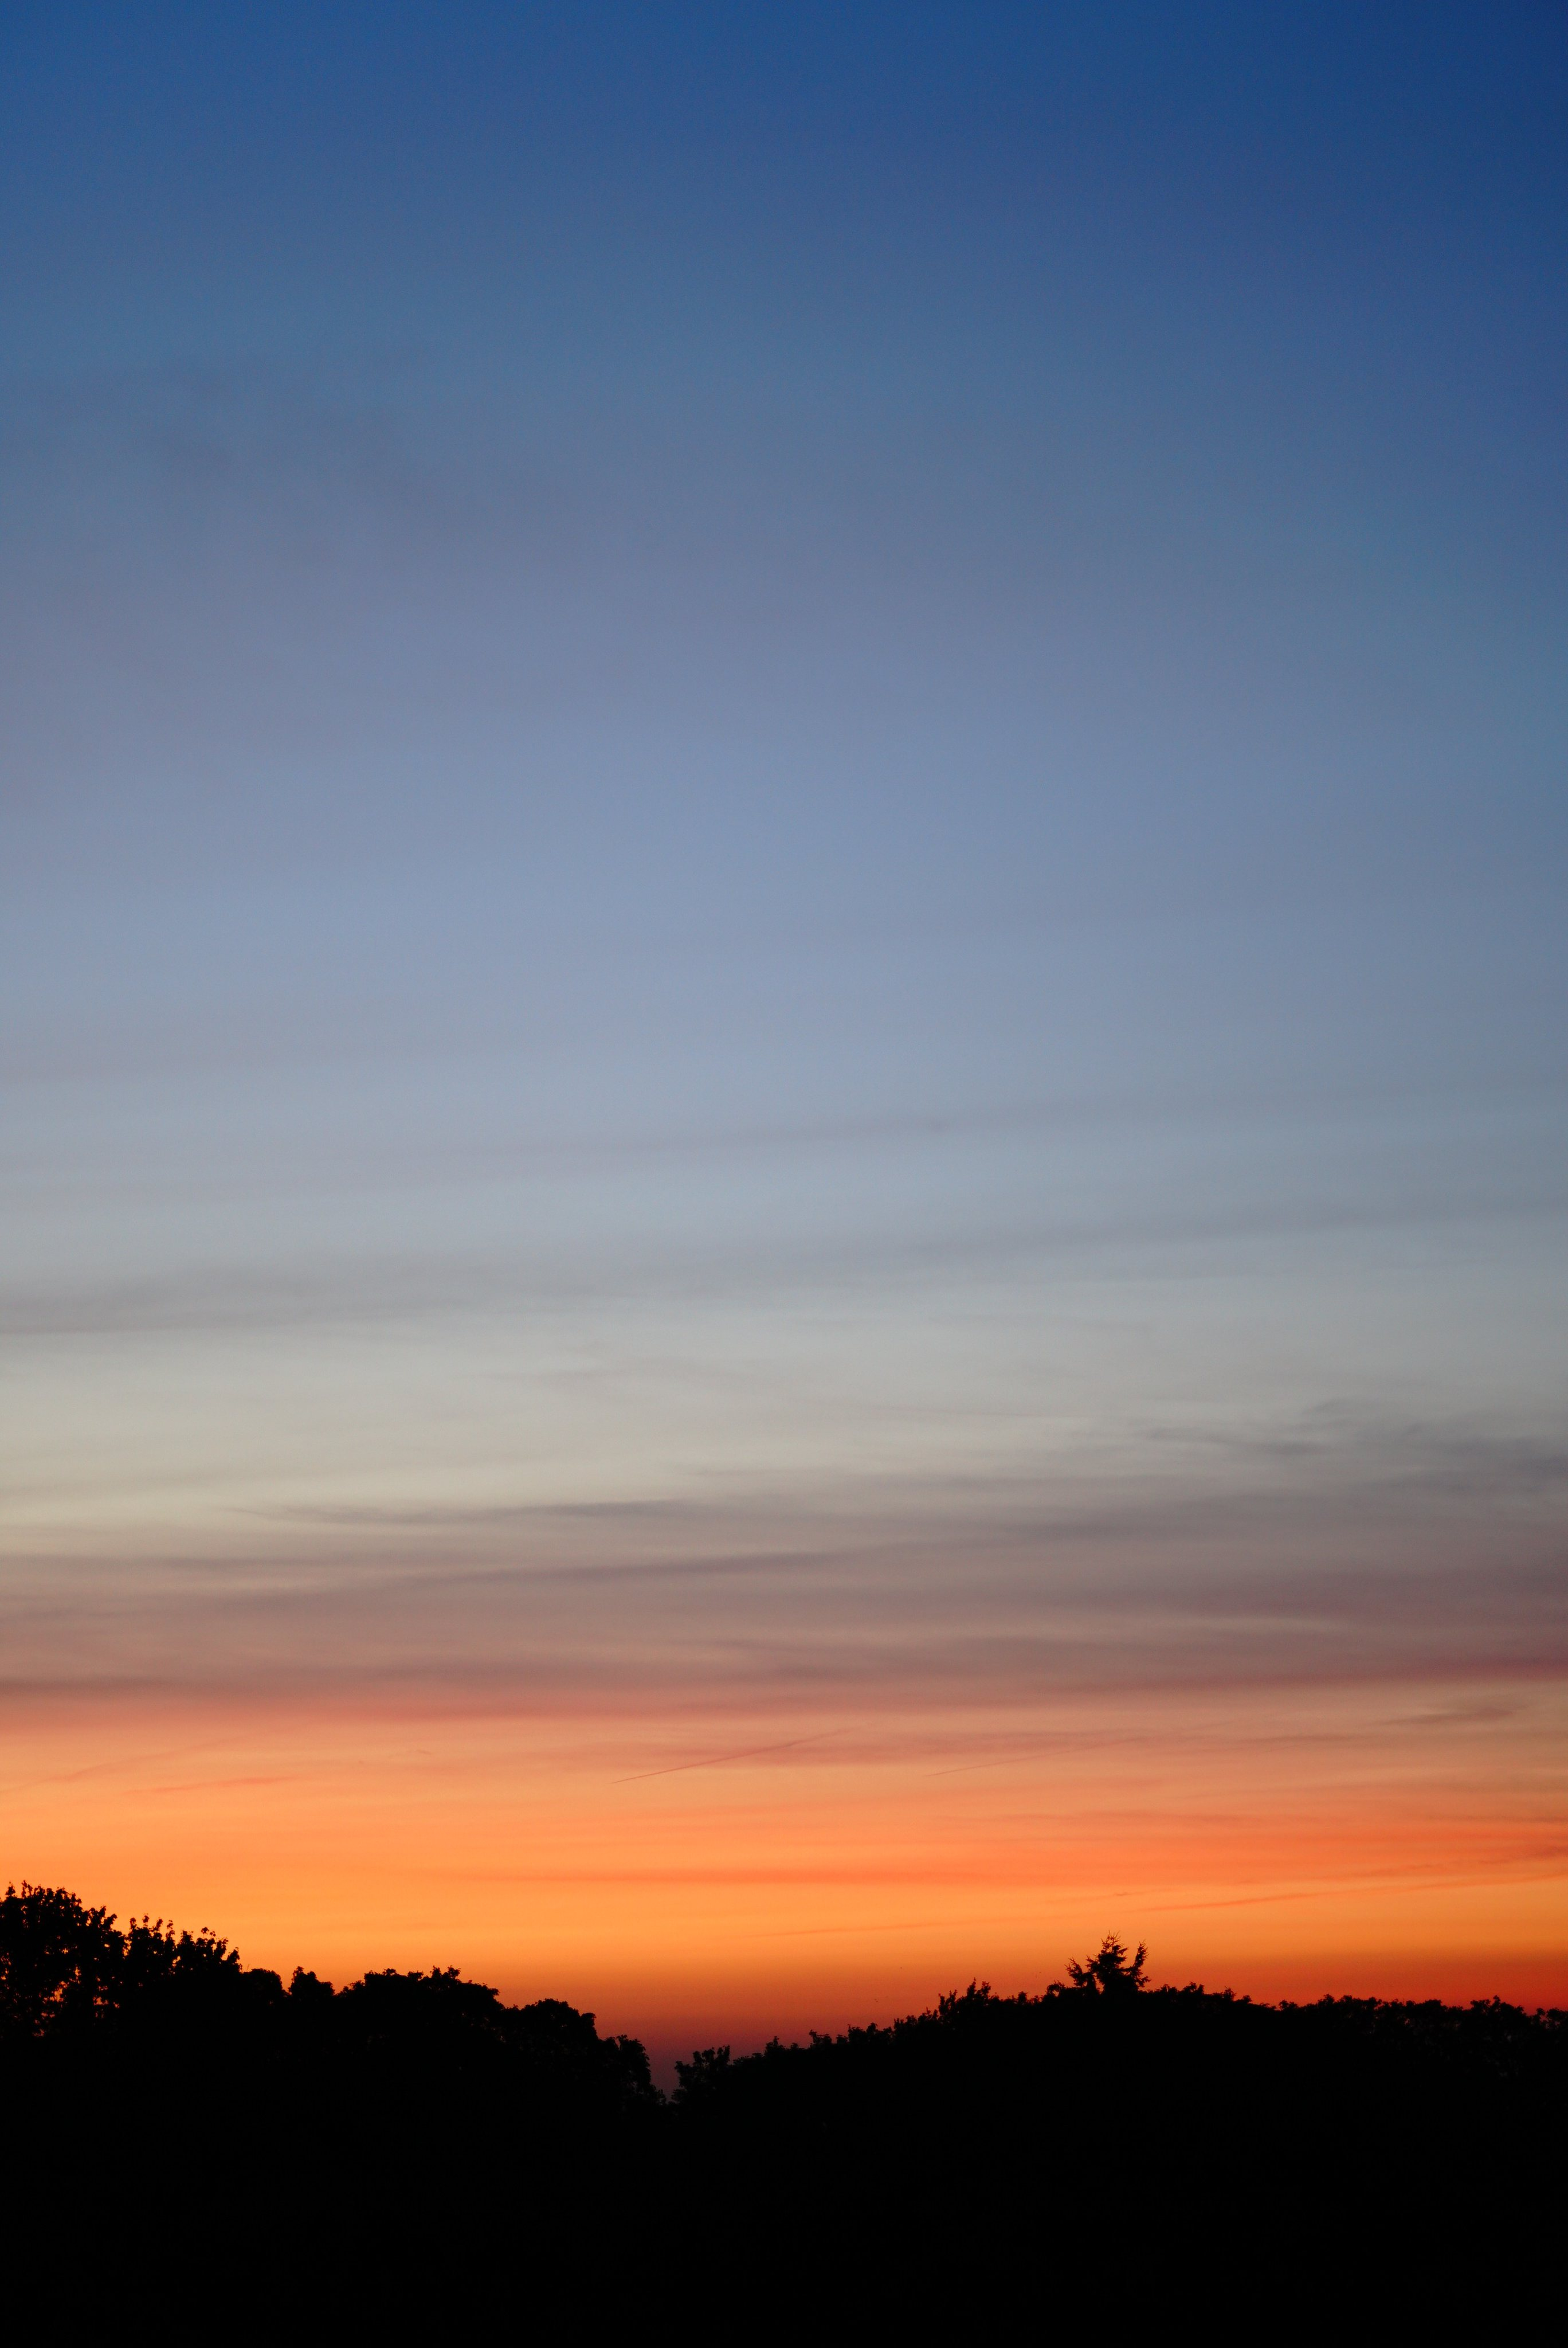 144221 download wallpaper Nature, Sunset, Dusk, Twilight, Trees, Silhouette, Night screensavers and pictures for free